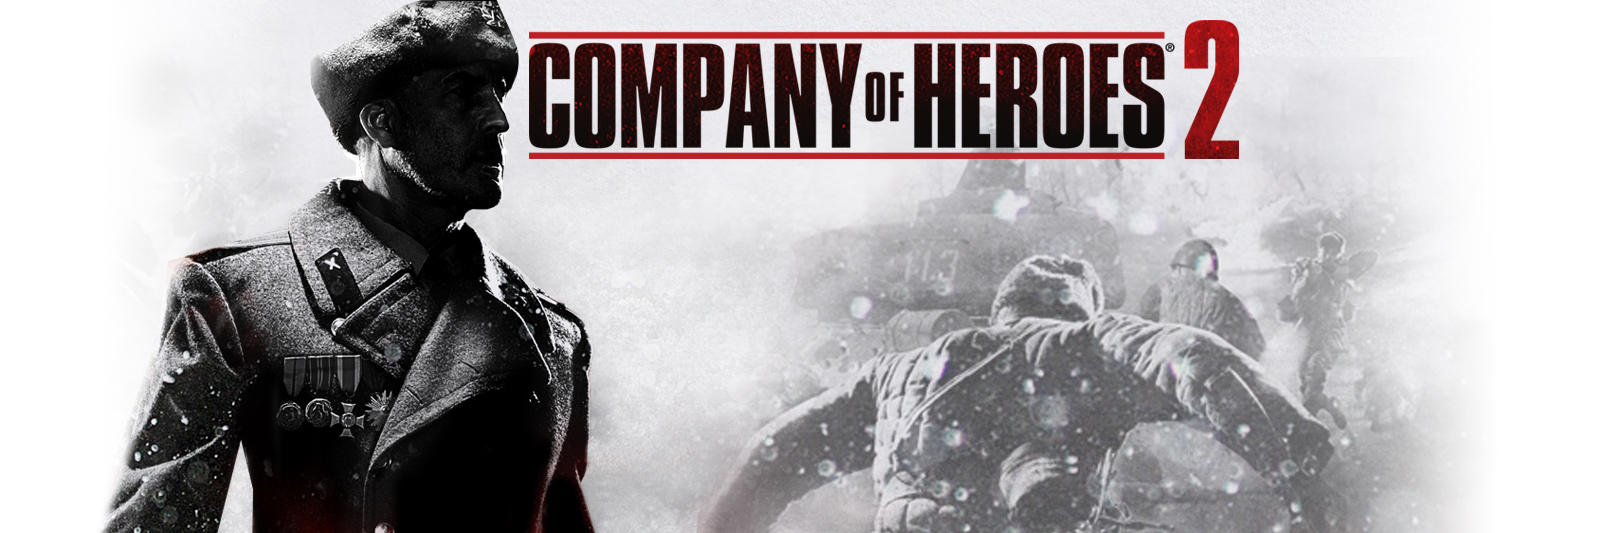 company of heroes 2 wallpaper 1 | wallpapersbq